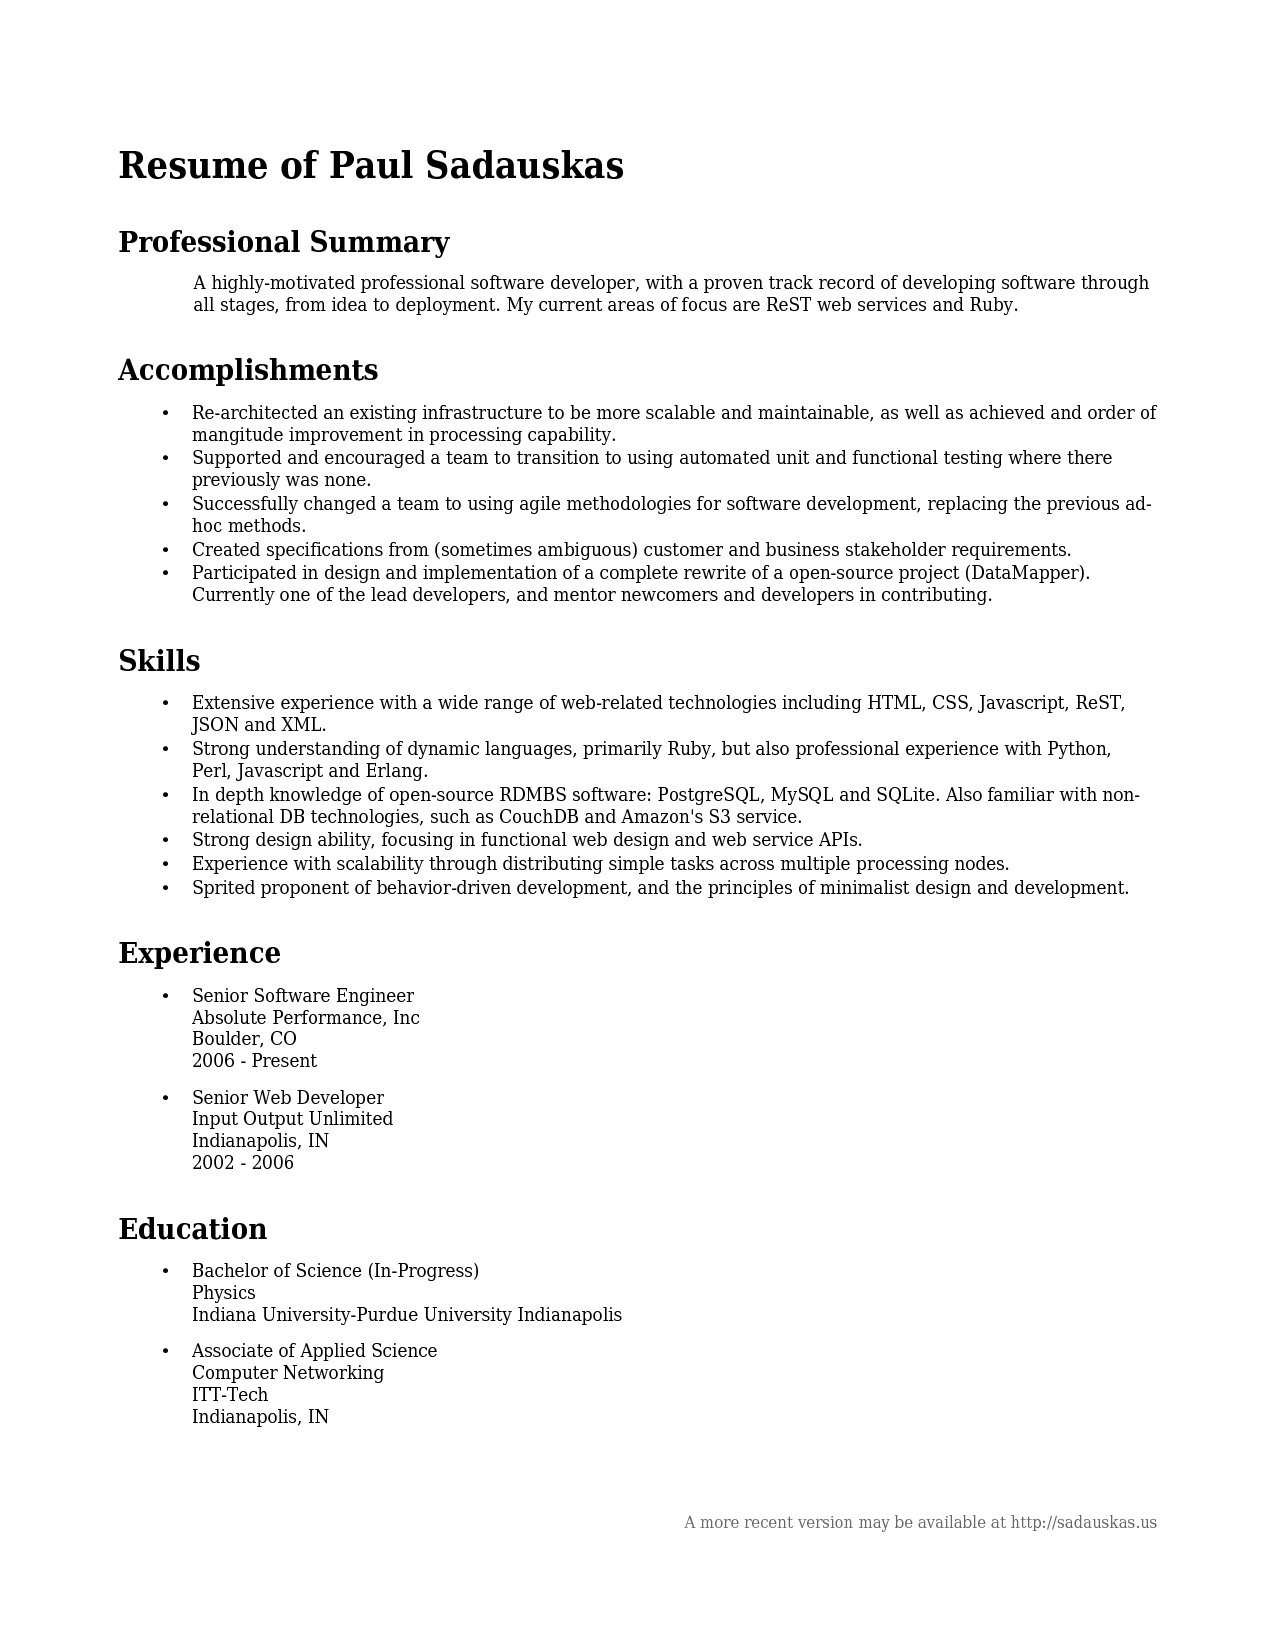 Samples Of Resume Summary Professional Resume Summary 2016 Samplebusinessresume